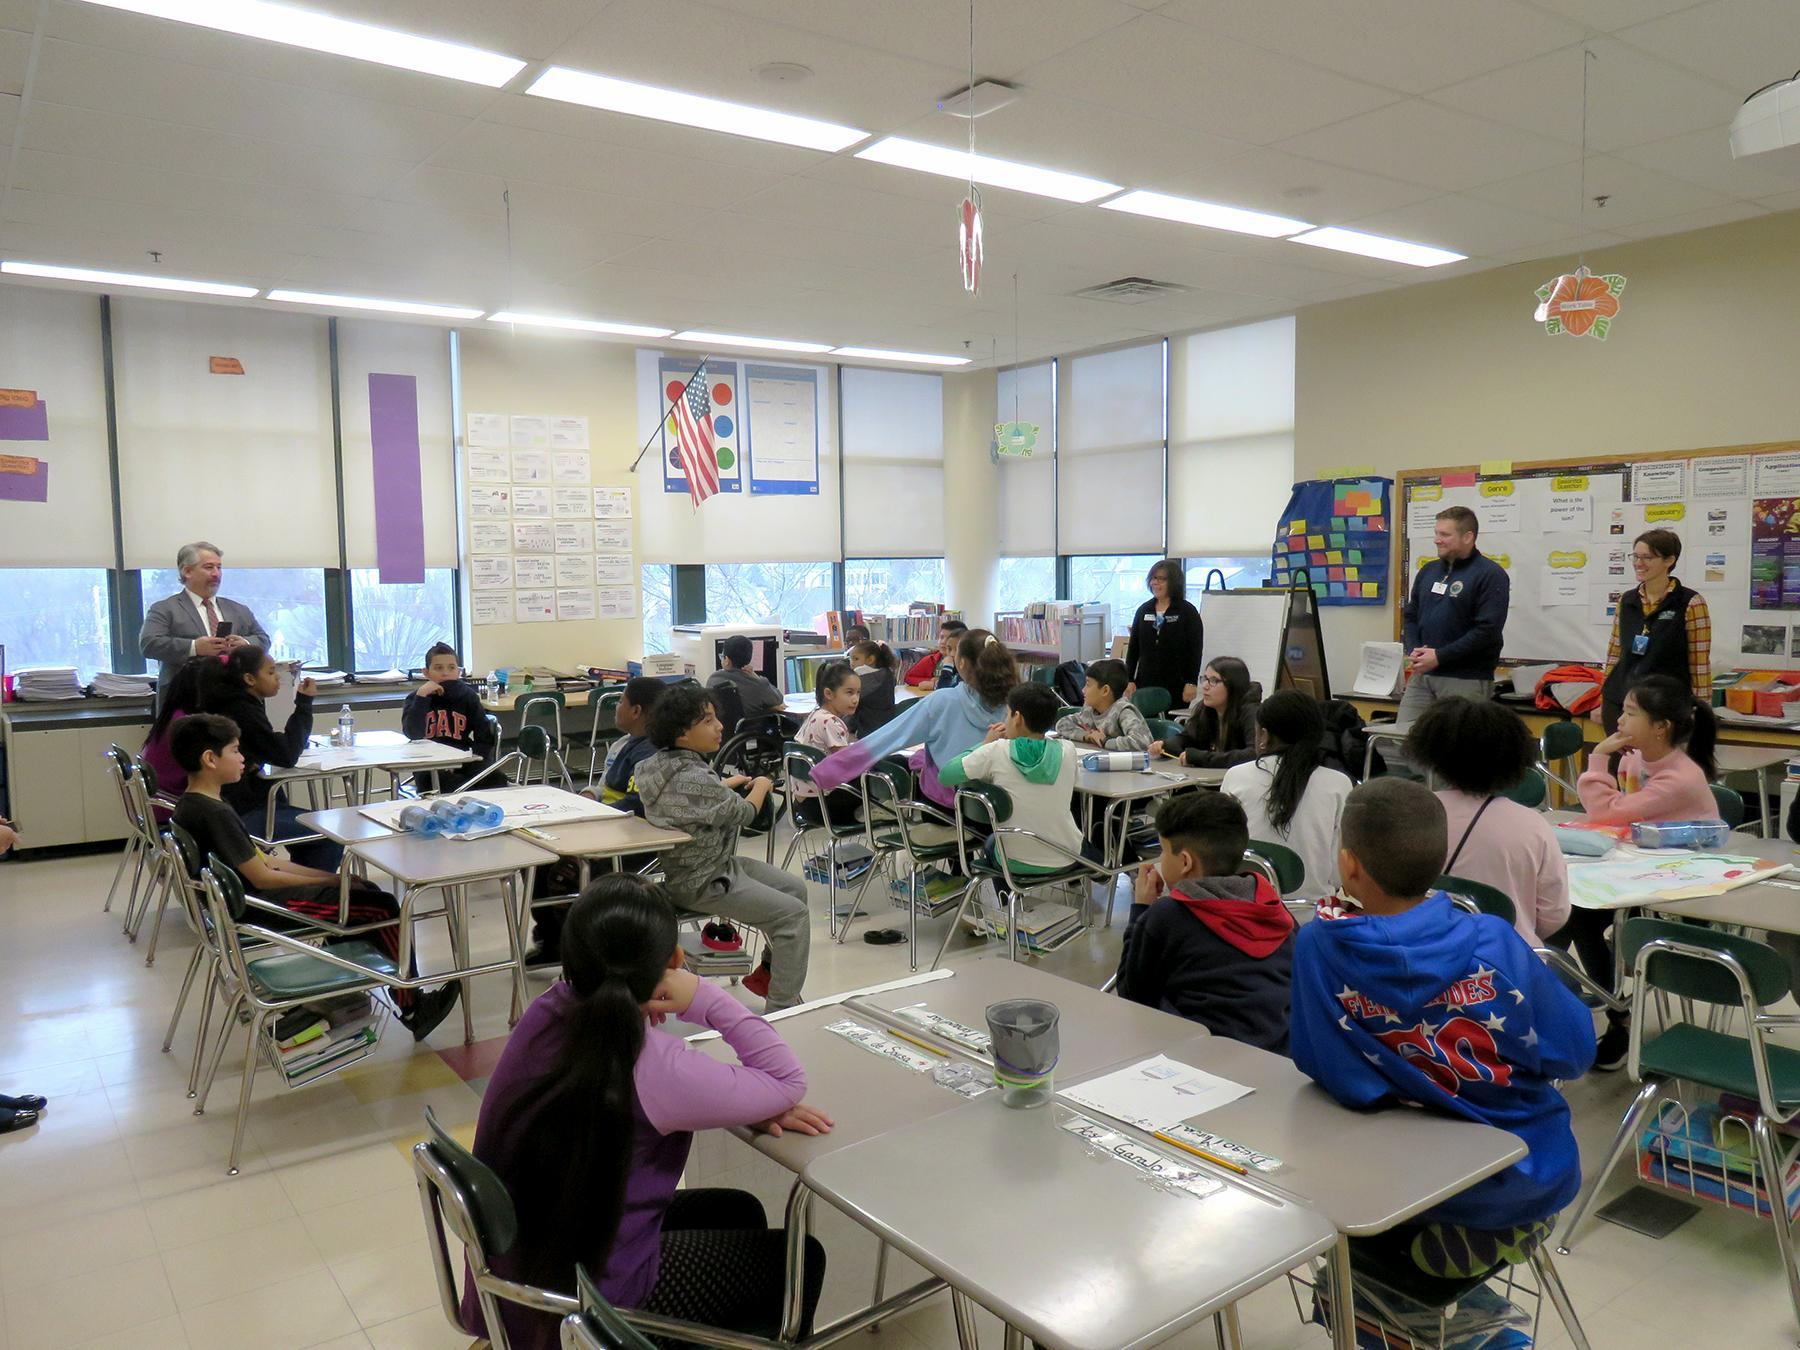 A wide angle view of the fifth-grade classroom